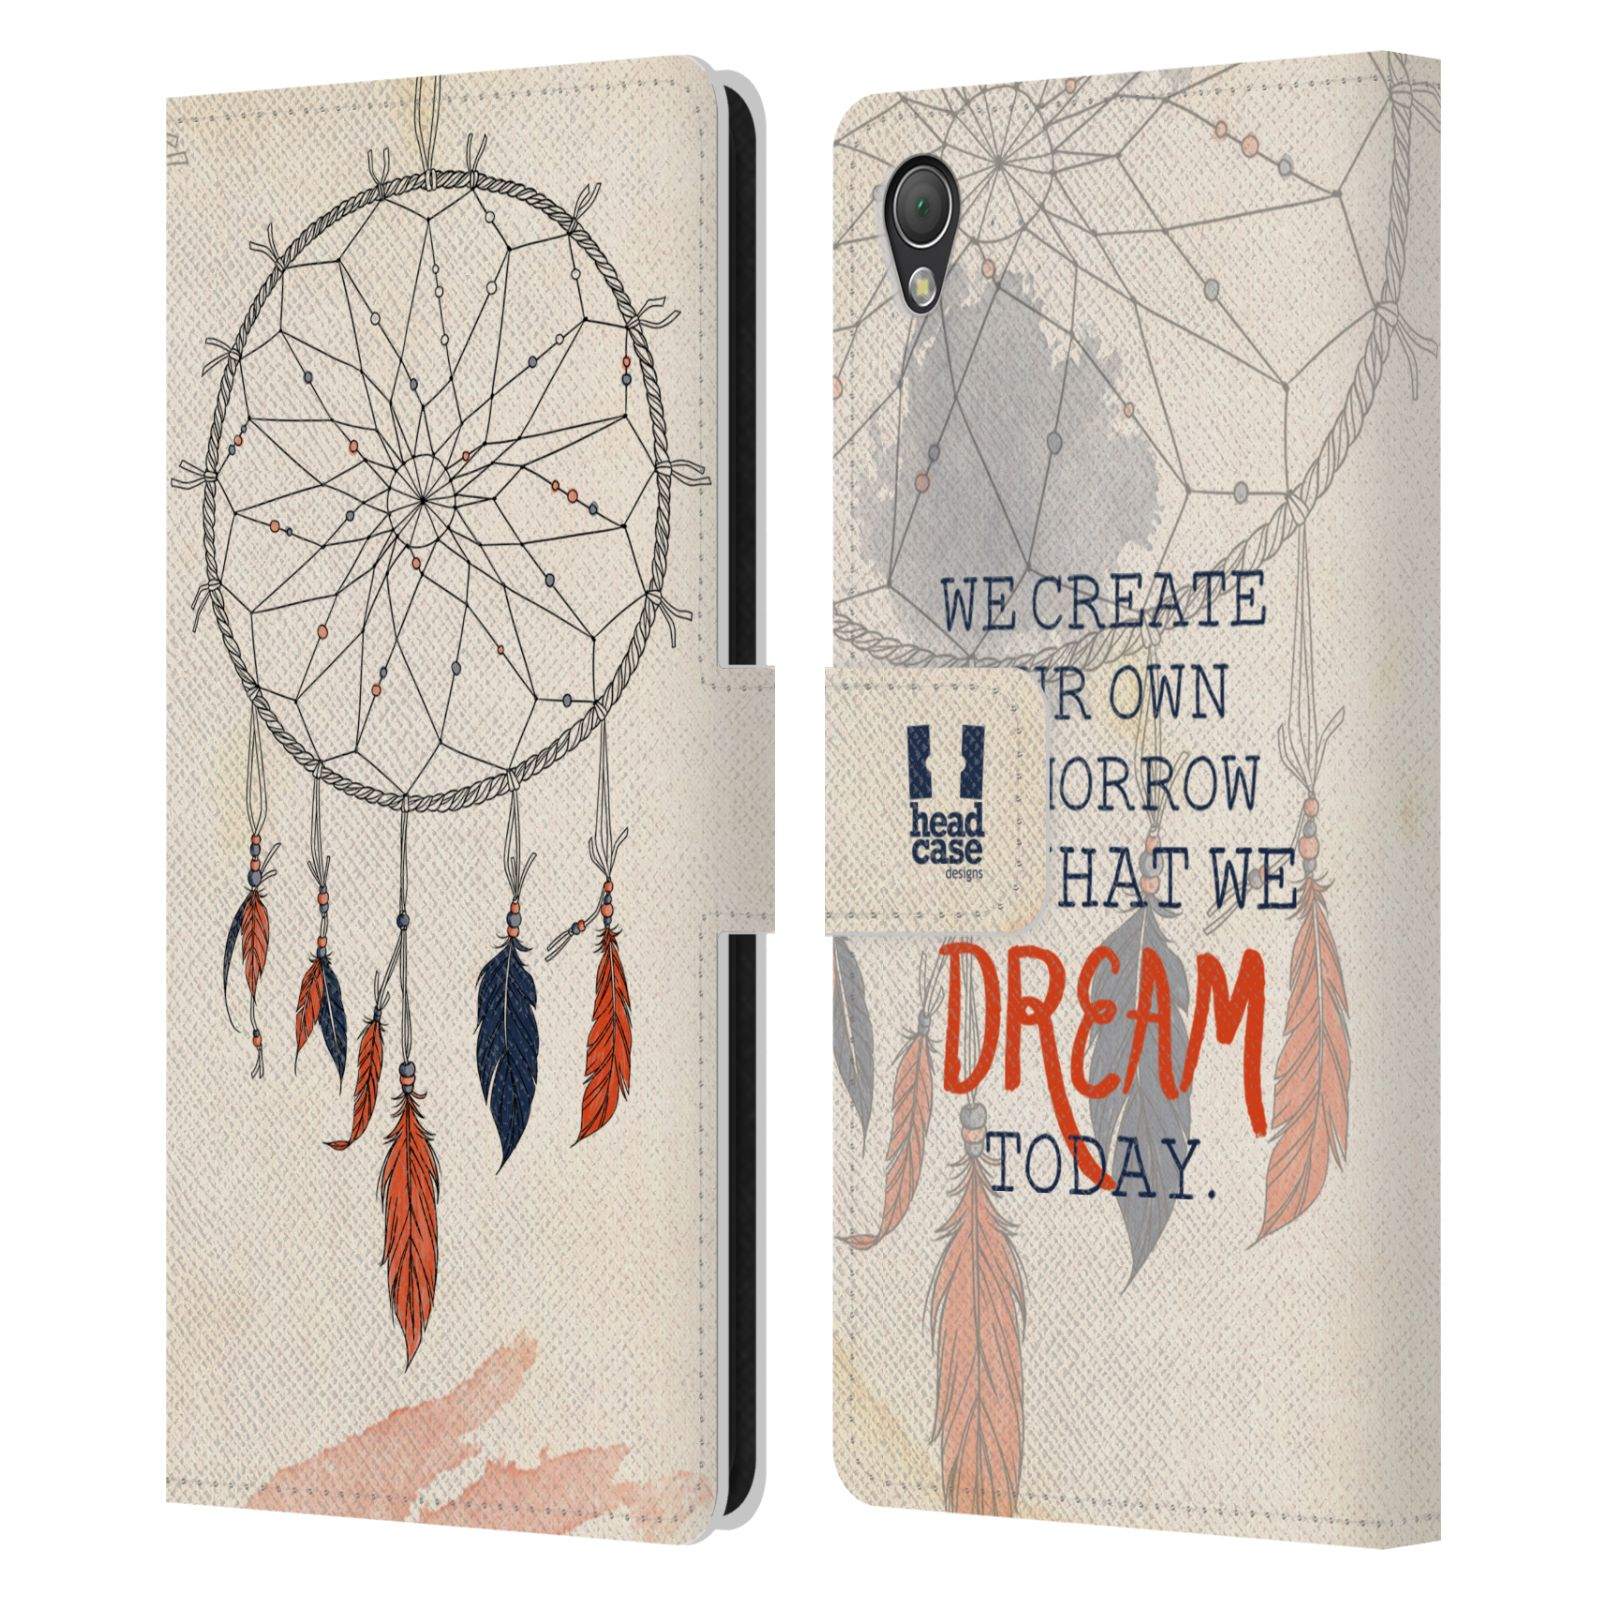 Leather Book Cover Ideas ~ Head case designs dreamcatchers leather book wallet